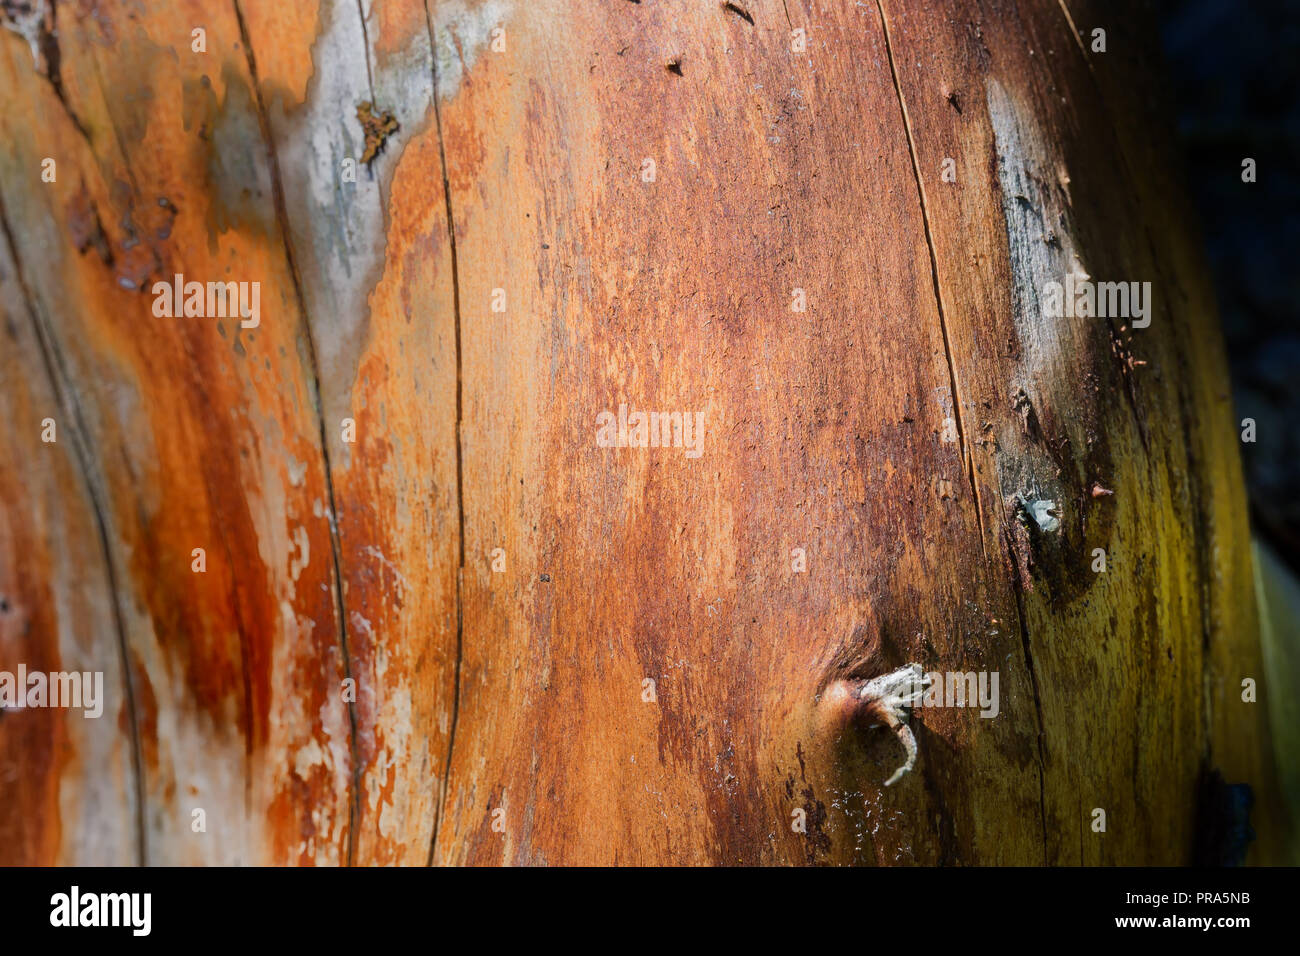 A close up log, without bark, in warm golden tones. - Stock Image